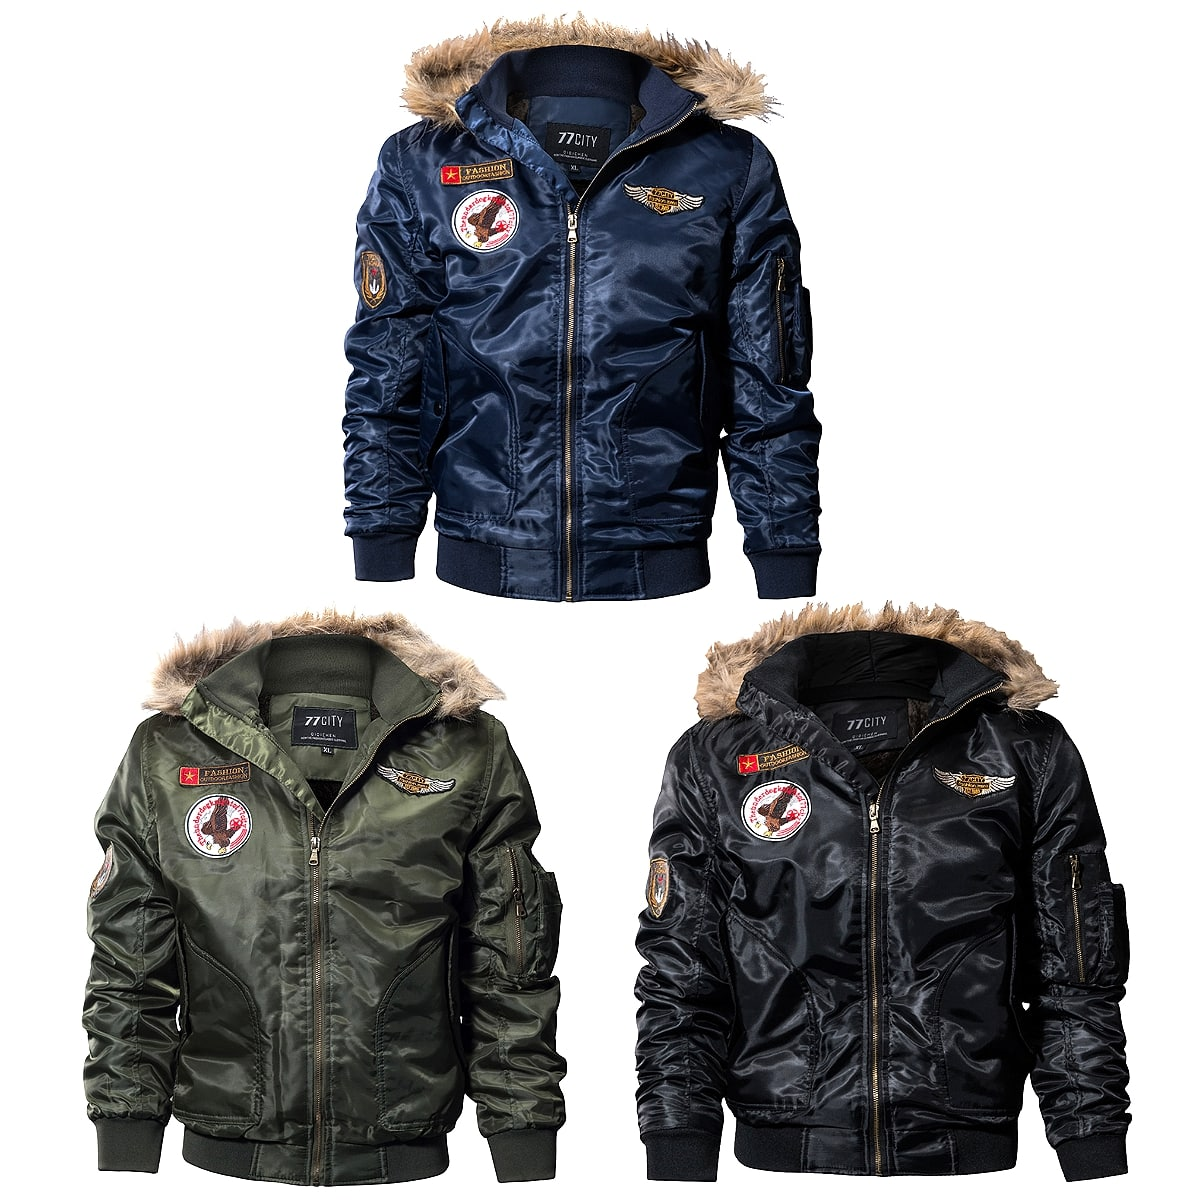 4c6ffde53 All three colors 6 size men military patches wool liner hooded Bonn bar  jacket on blouson jacket coat outer MA-1 motorcycle with the flight jacket  ...